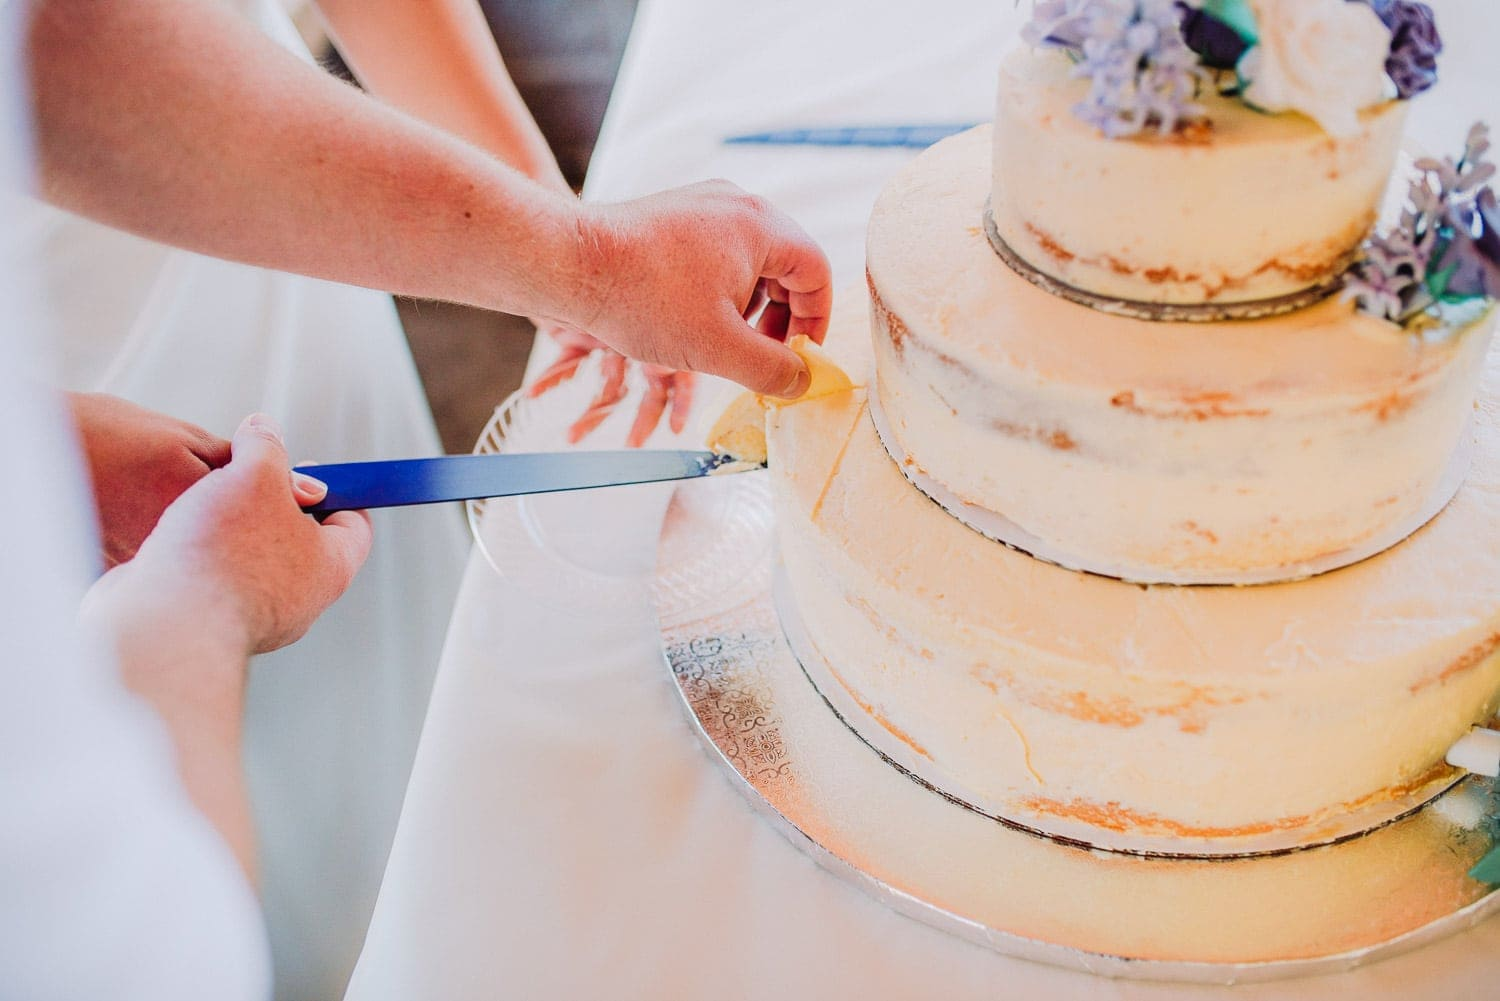 The bride and groom are cutting their wedding cake.